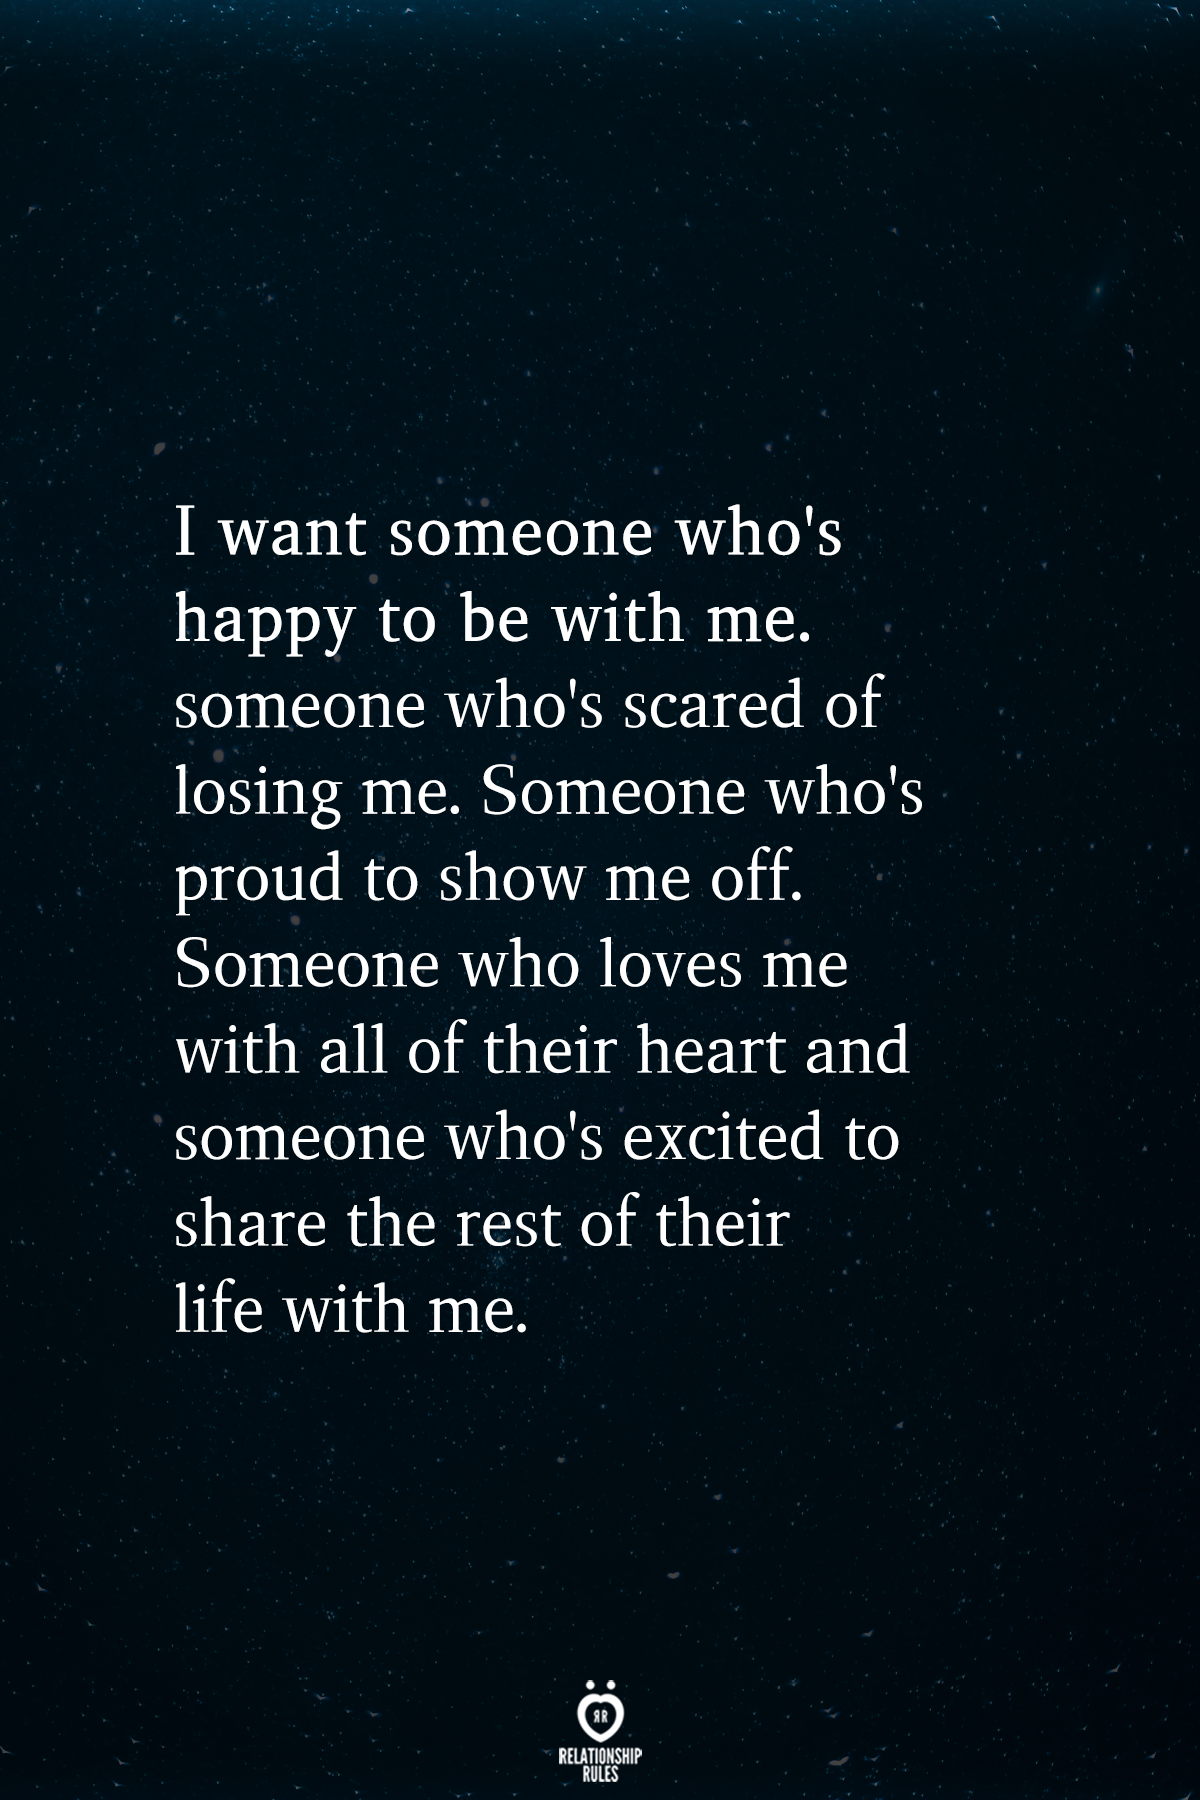 Someone Excited Losing Scared Happy Proud Their Loves Heart Share Show Rest Life With Wanti Want Someone W True Quotes Words Relationship Quotes